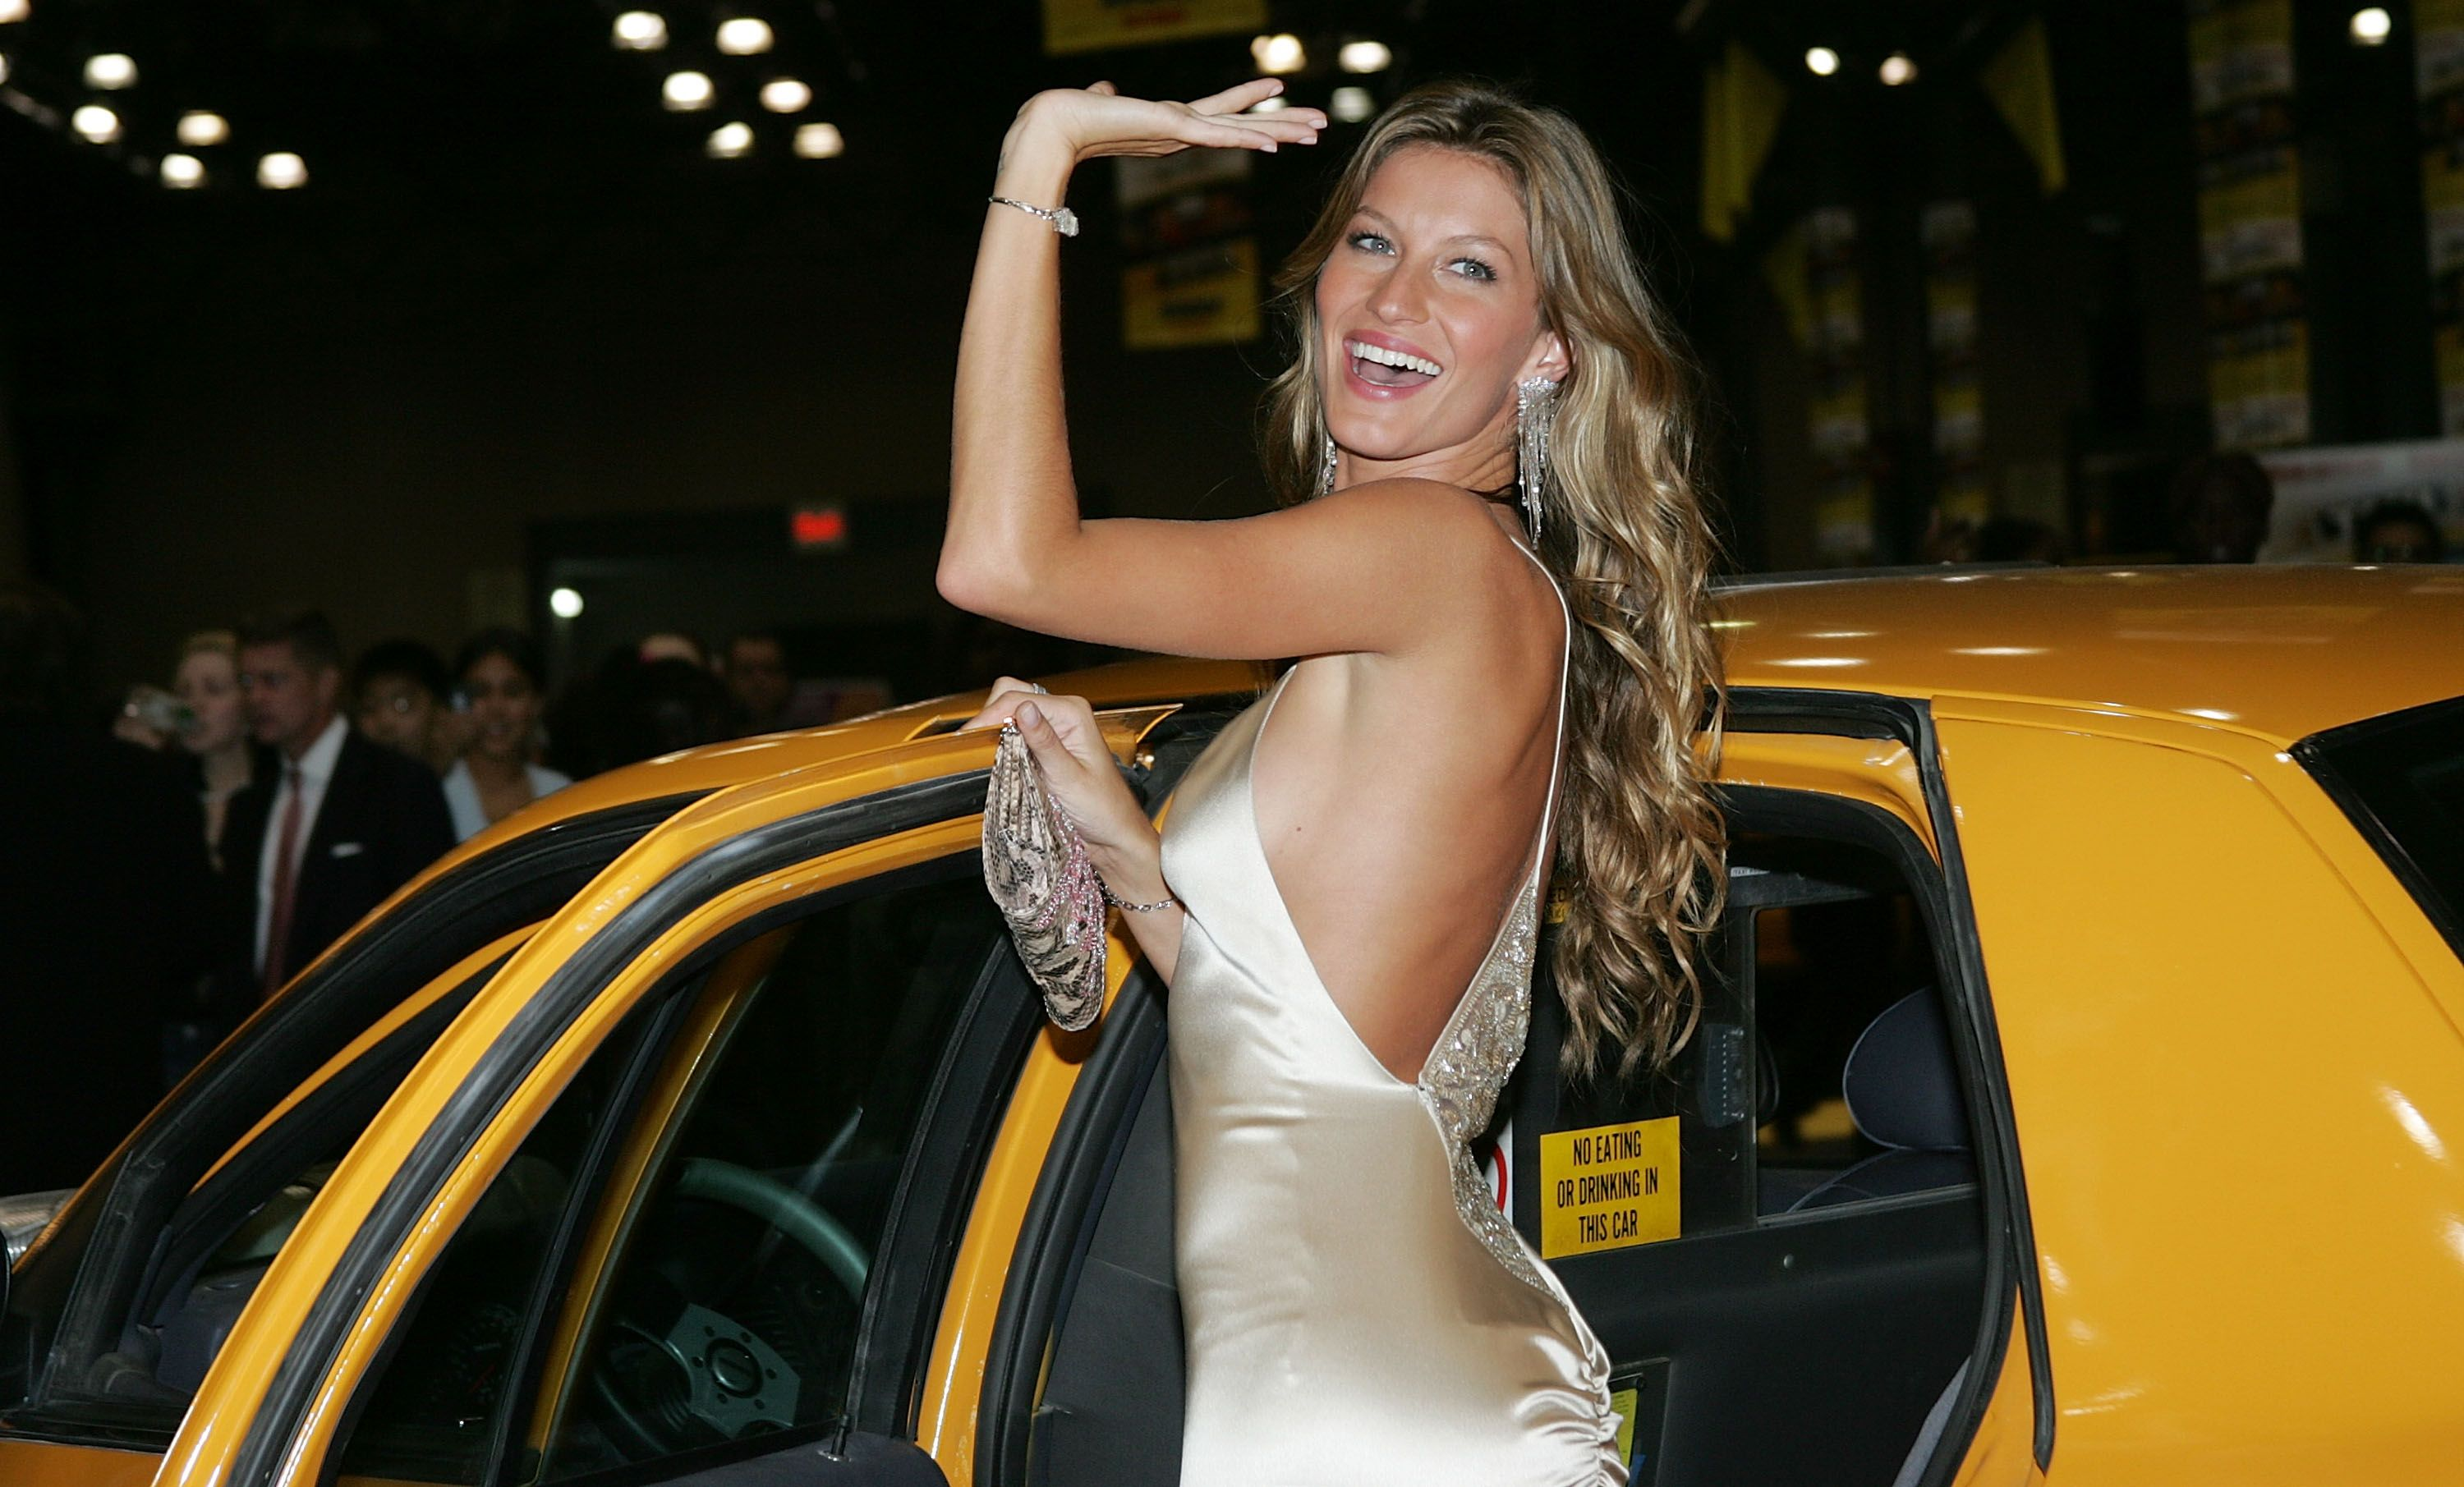 """Gisele Bundchen at the """"Taxi"""" film premiere in 2004 in New York City 